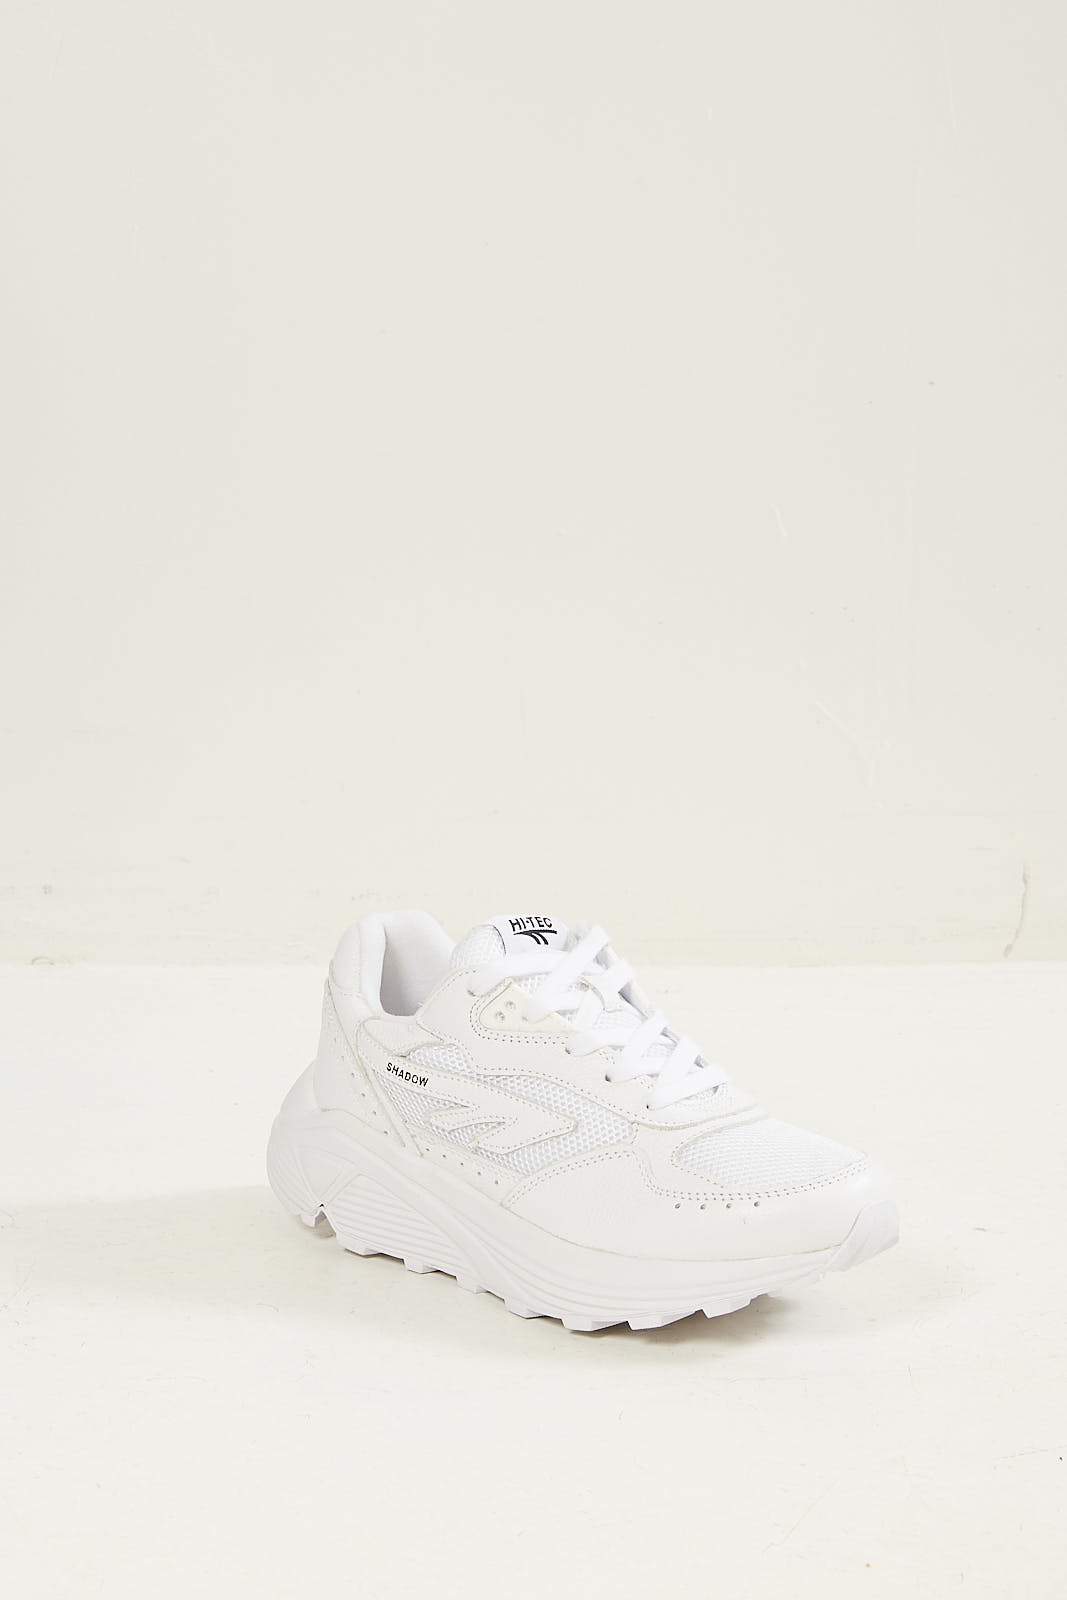 Hi-Tec Hts silver shadow sneakers 017 white black